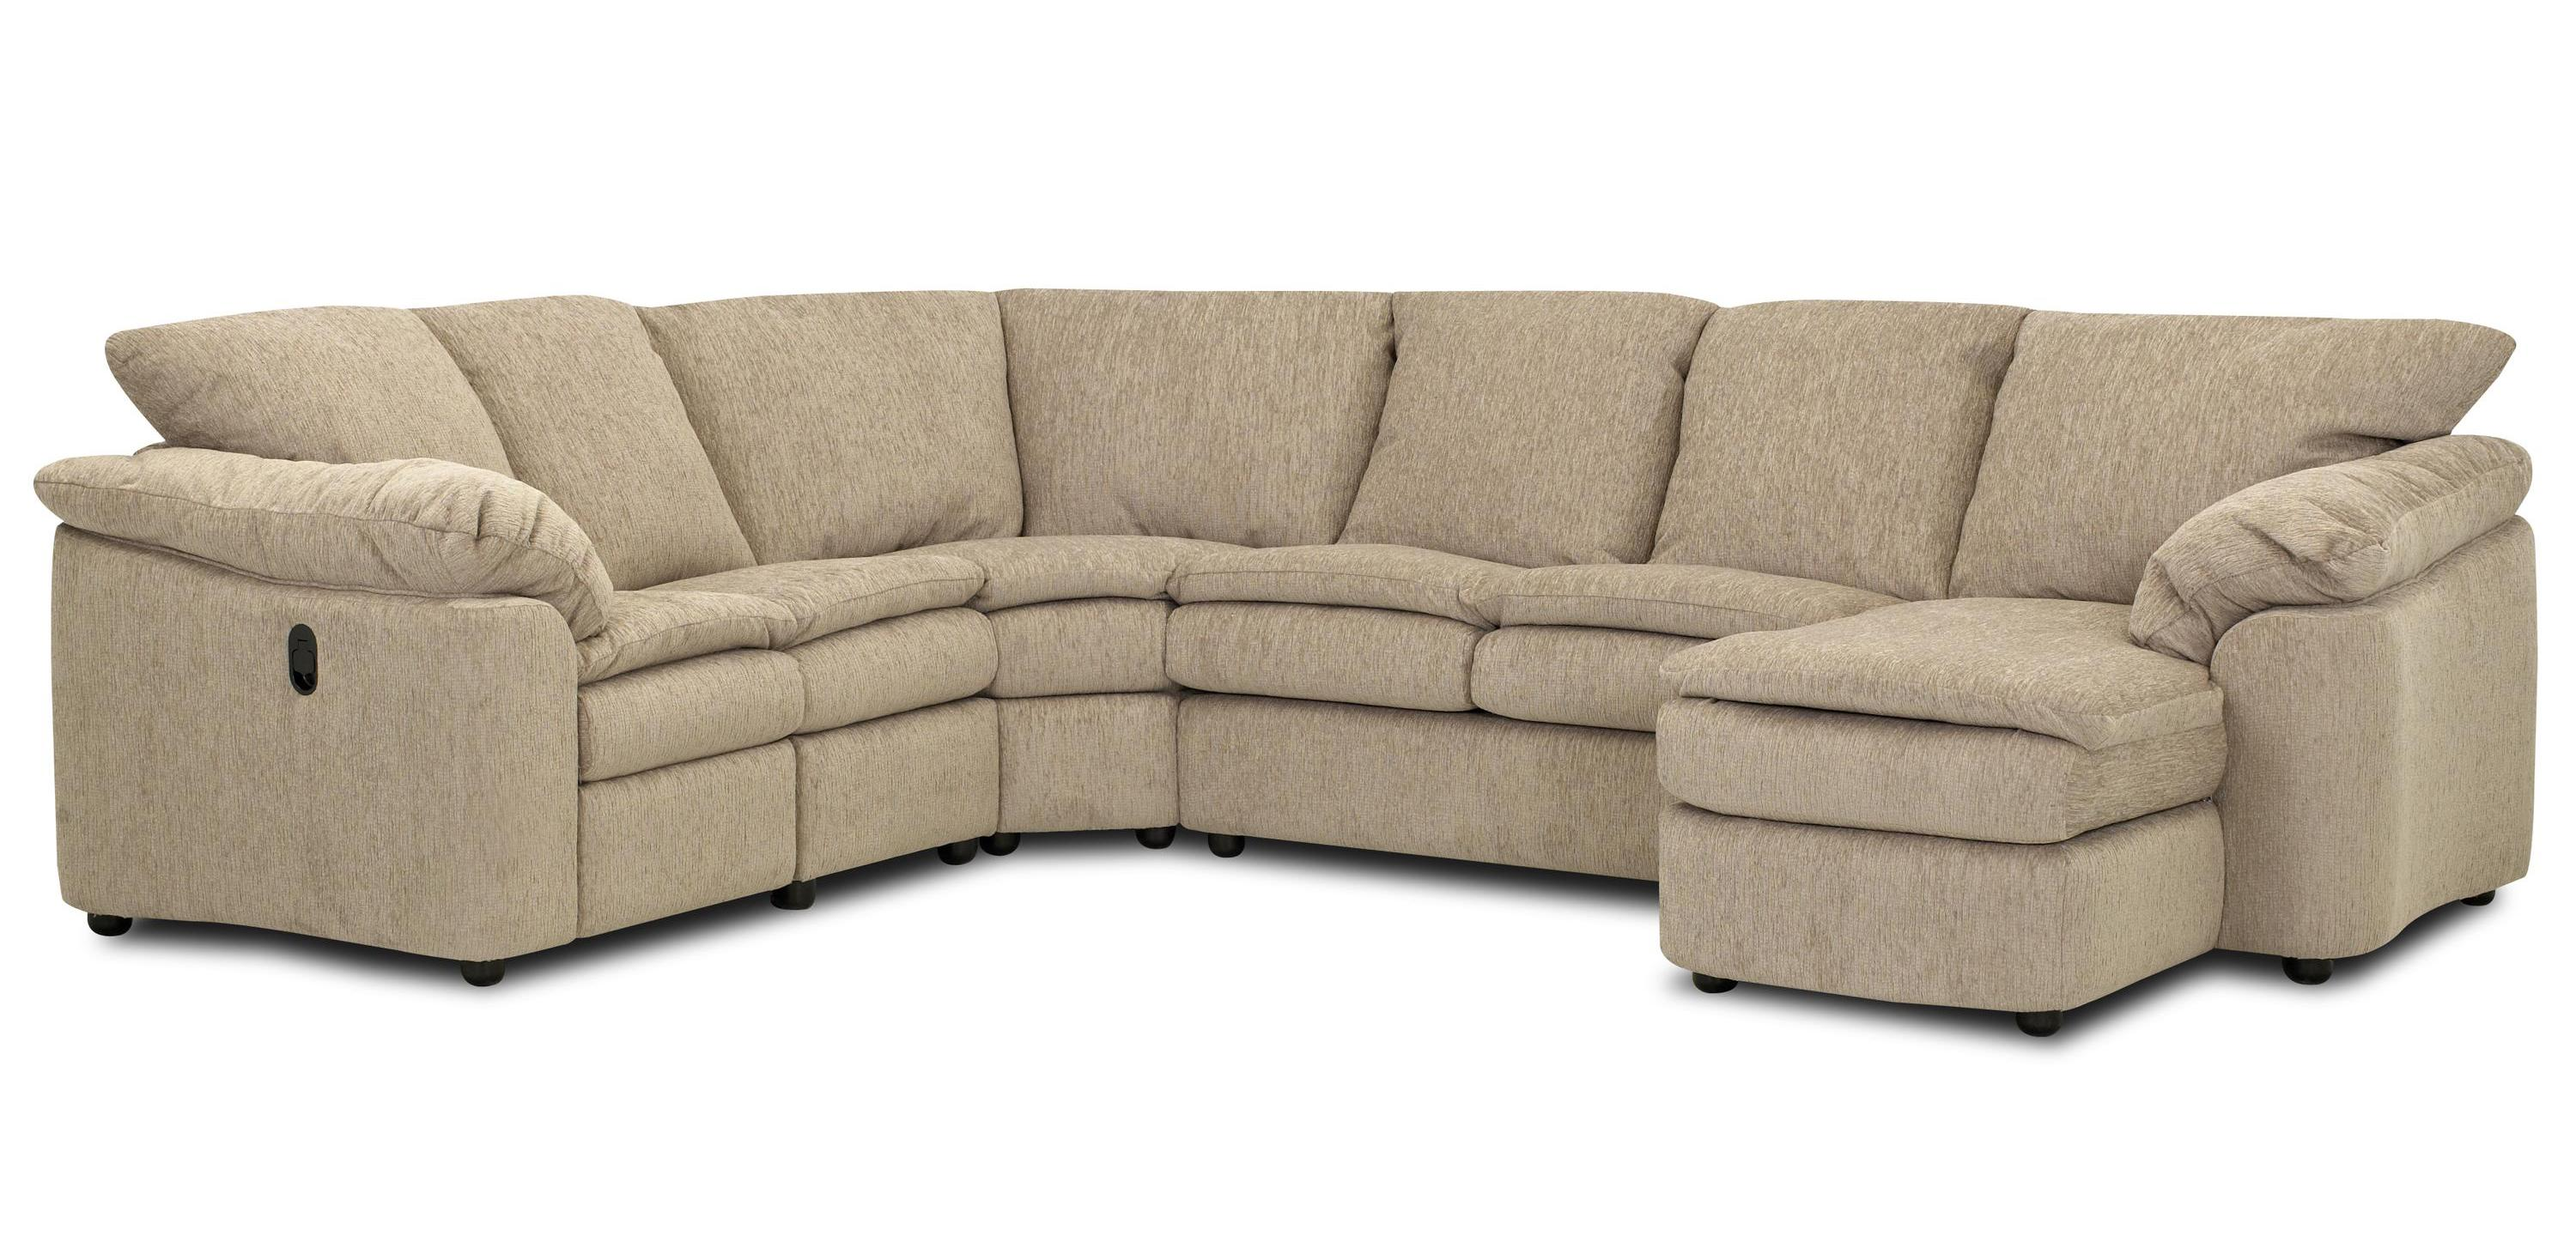 Legacy Dual Reclining Left Arm Loveseat Sleeper And Right Chaise Sectional By Klaussner